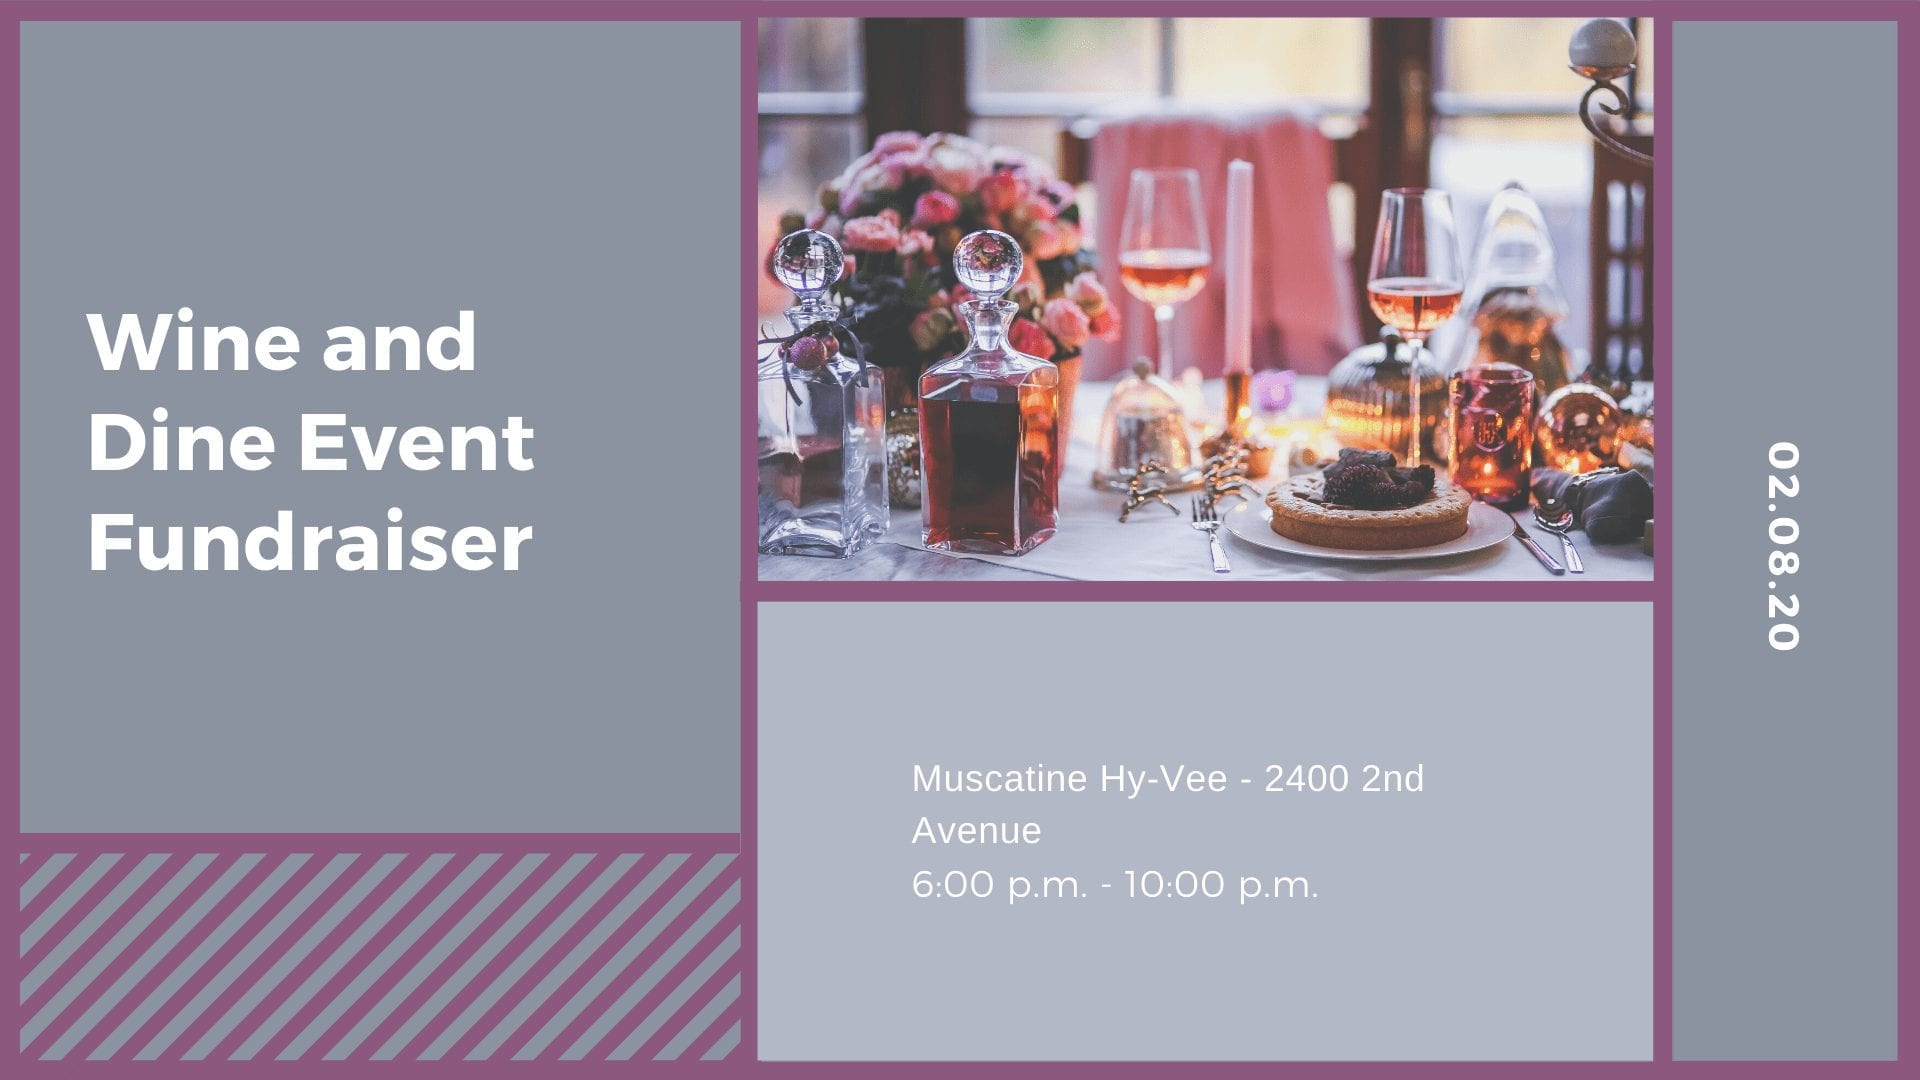 Wine and Dine Event Fundraiser